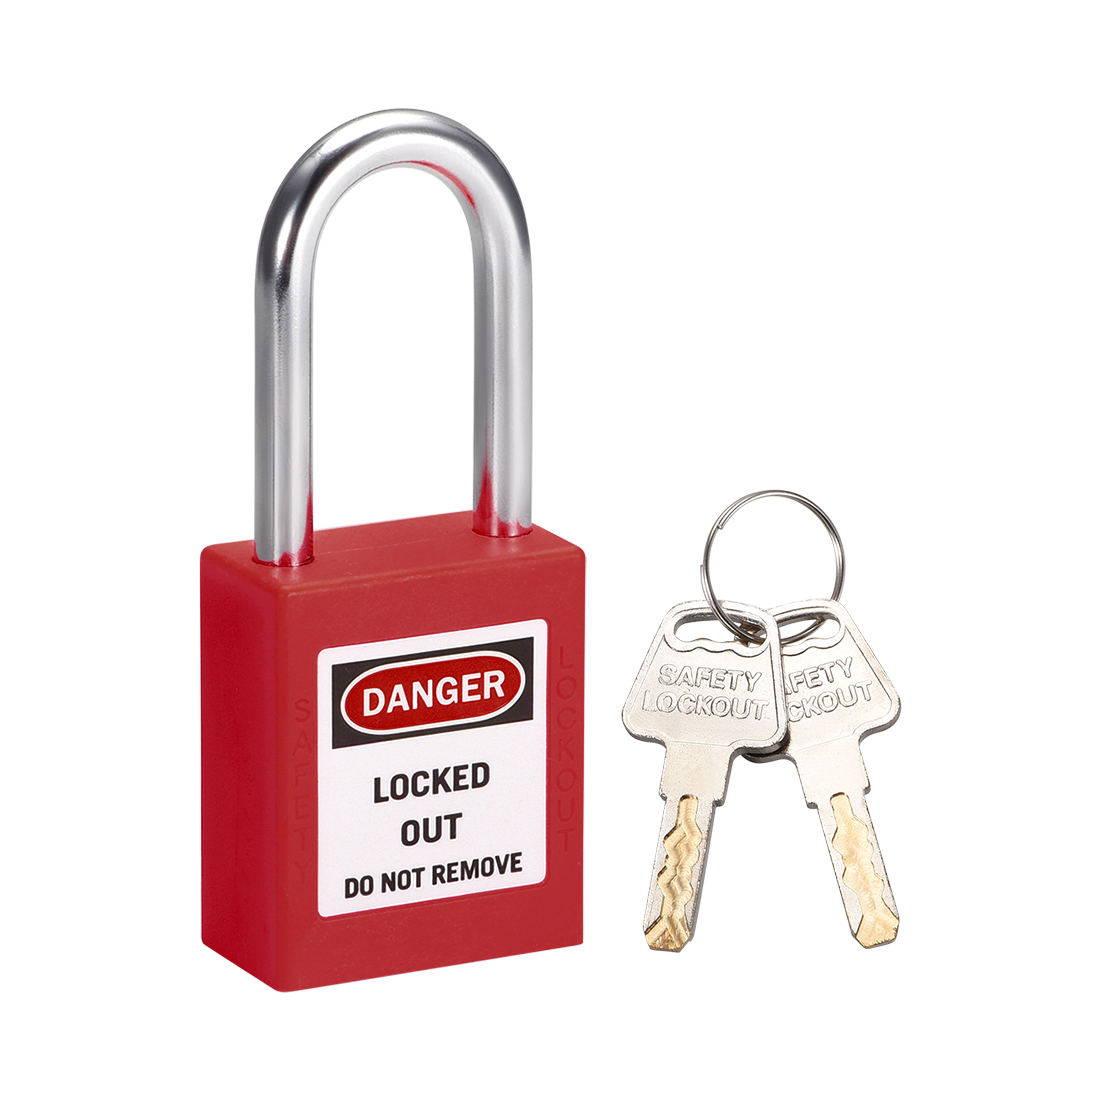 Lockout Tagout Locks 1-1/2 Inch Shackle Key Different Safety Padlock Plastic Red